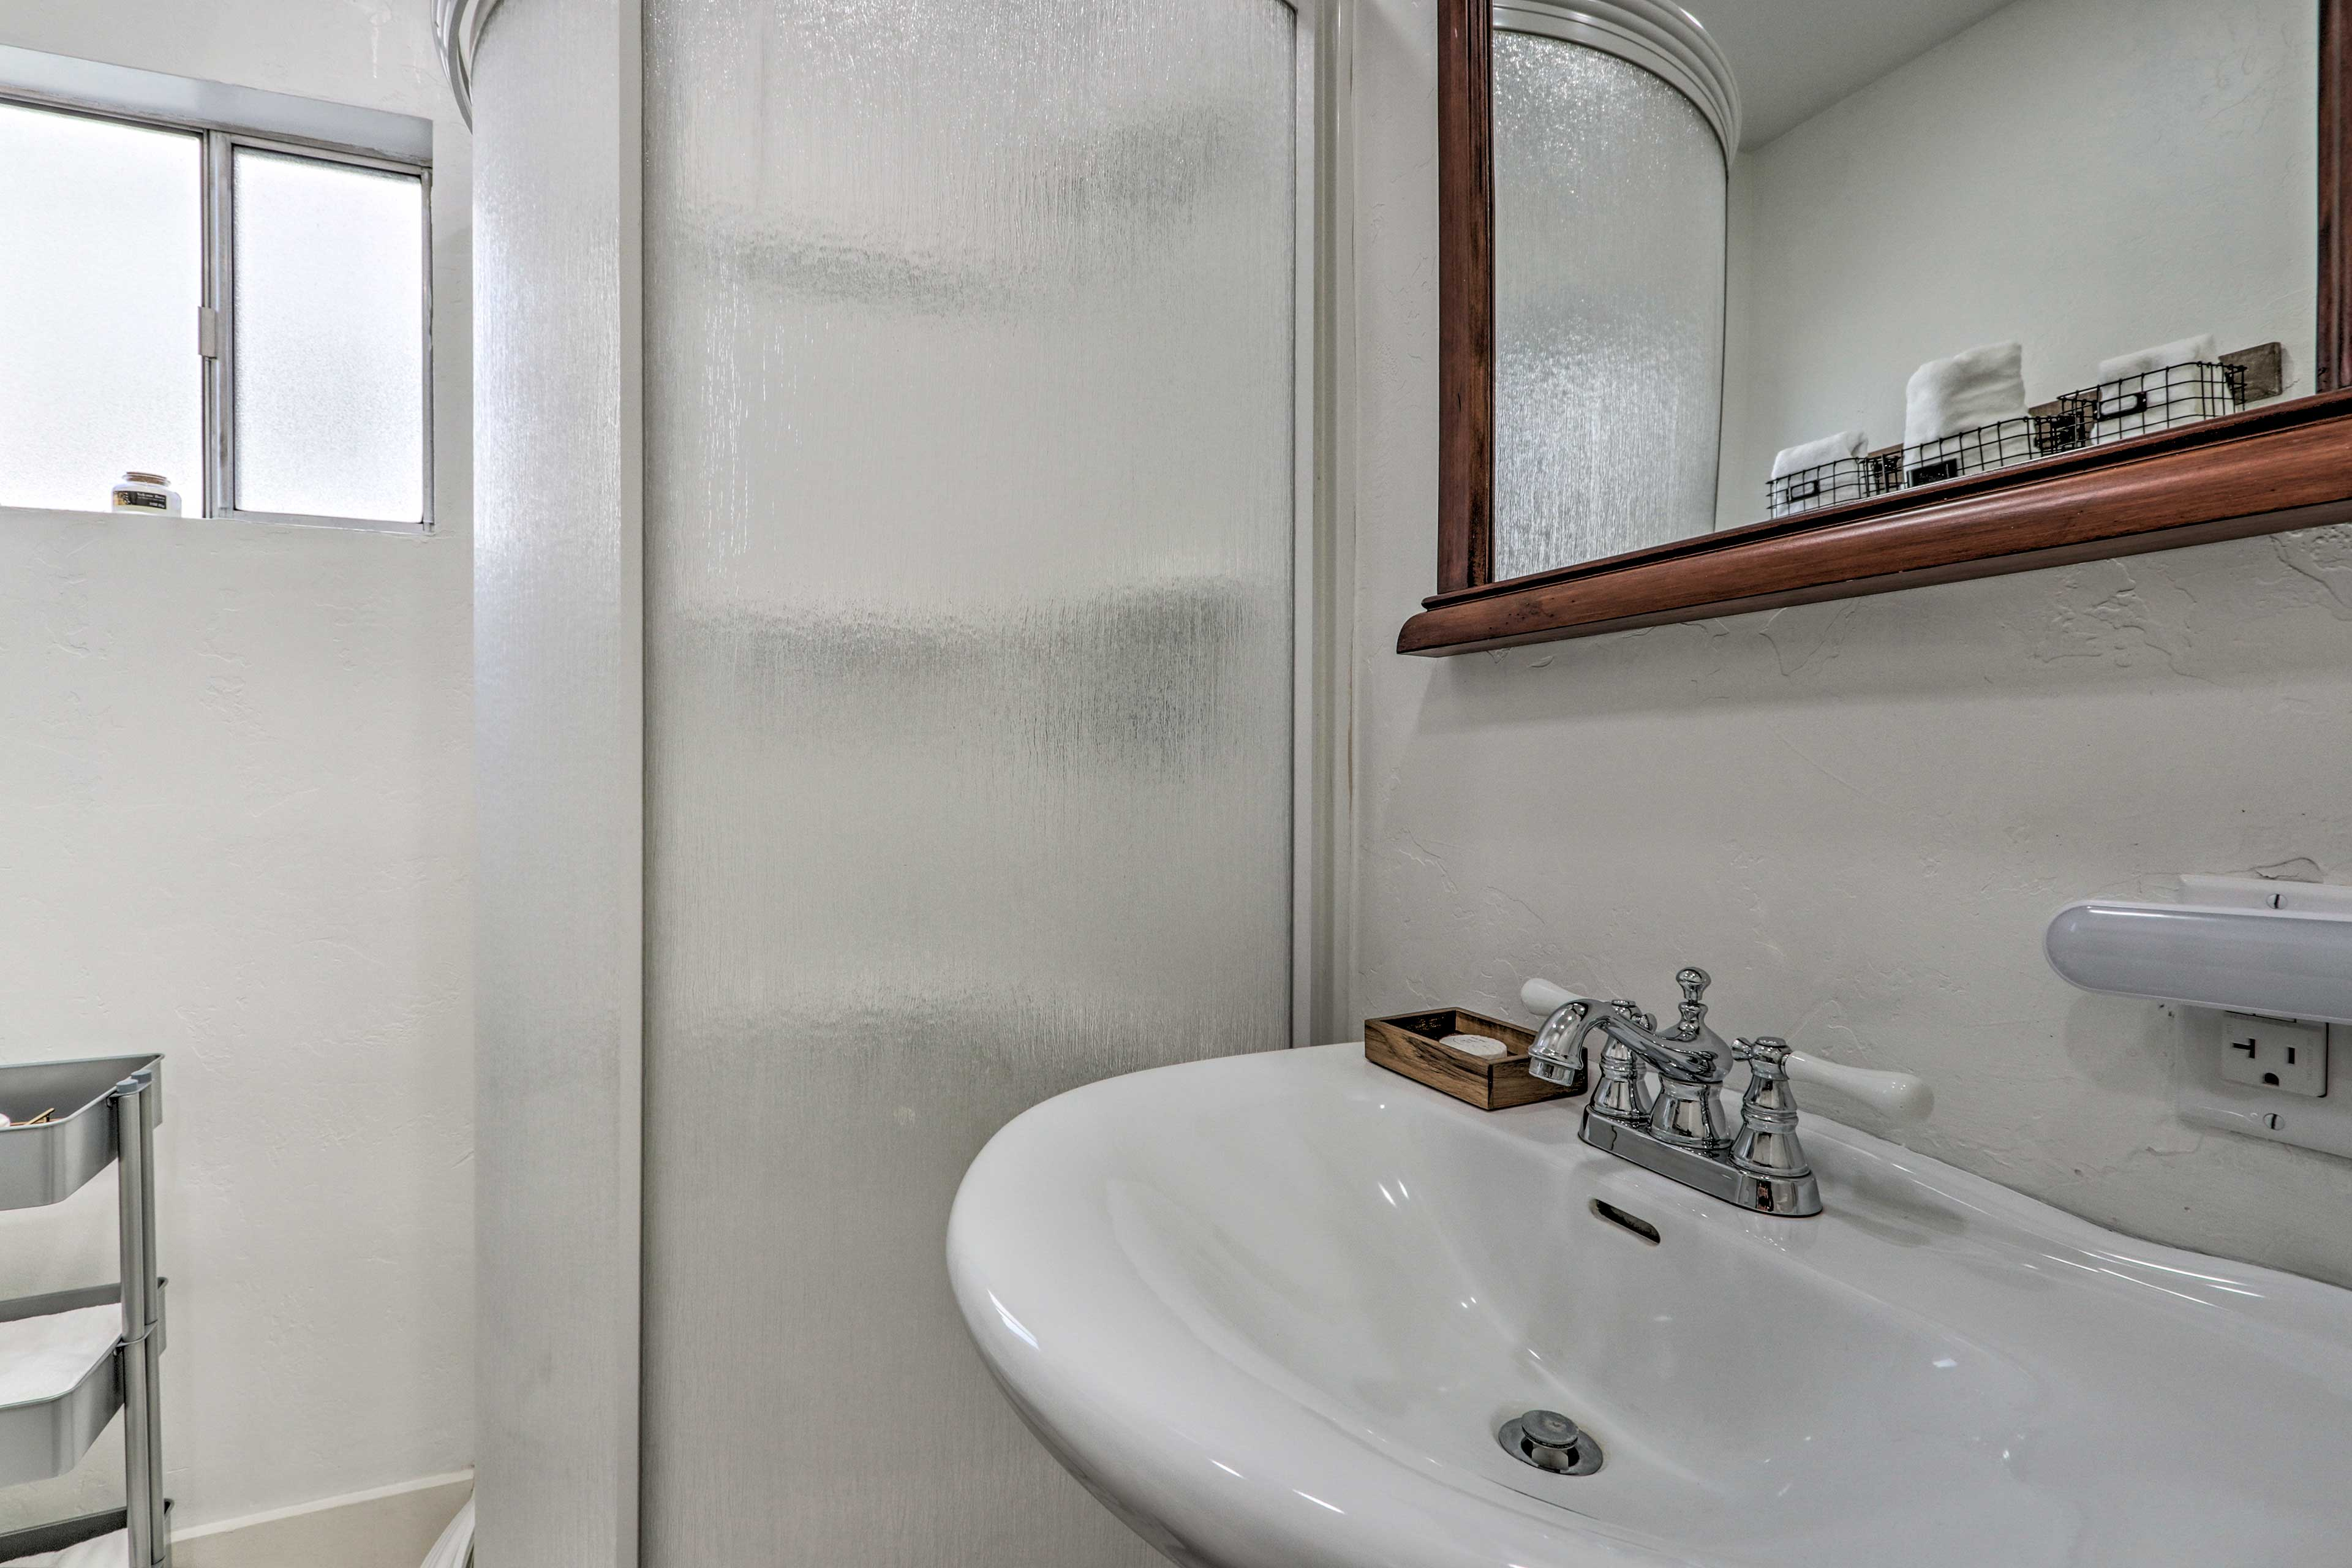 A second full bathroom provides additional privacy for your loved ones.